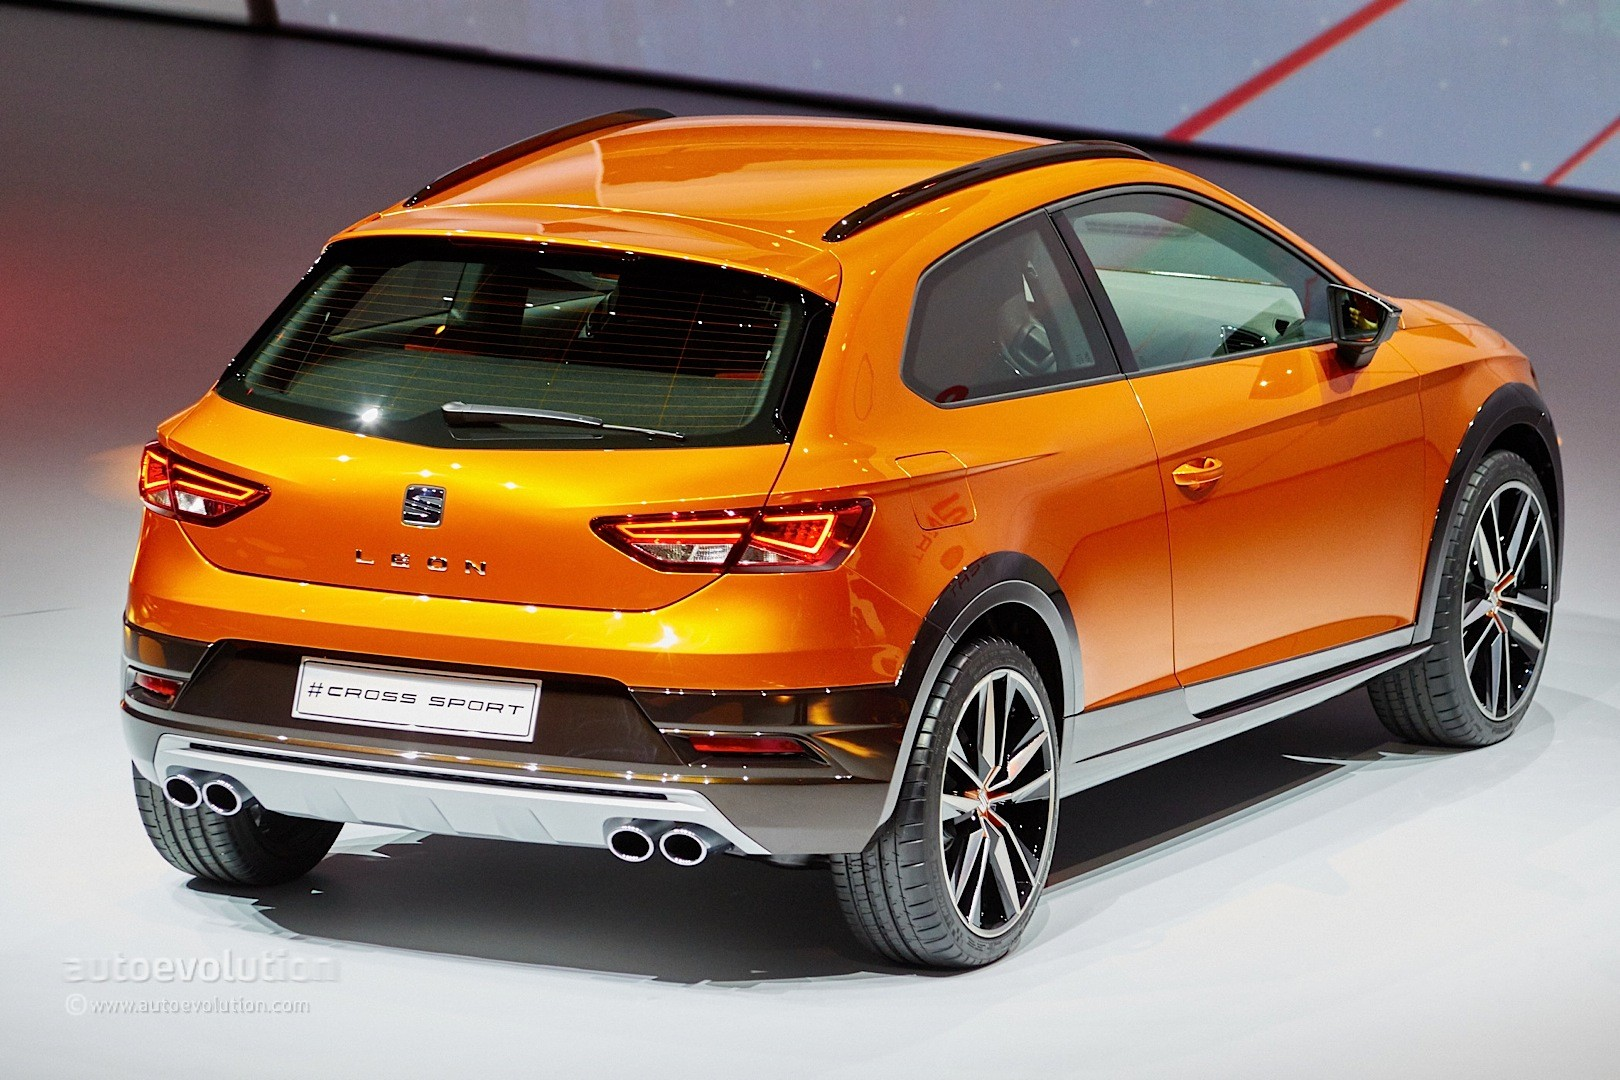 Seat Leon Cross Sport Is A Taller Golf R At Frankfurt